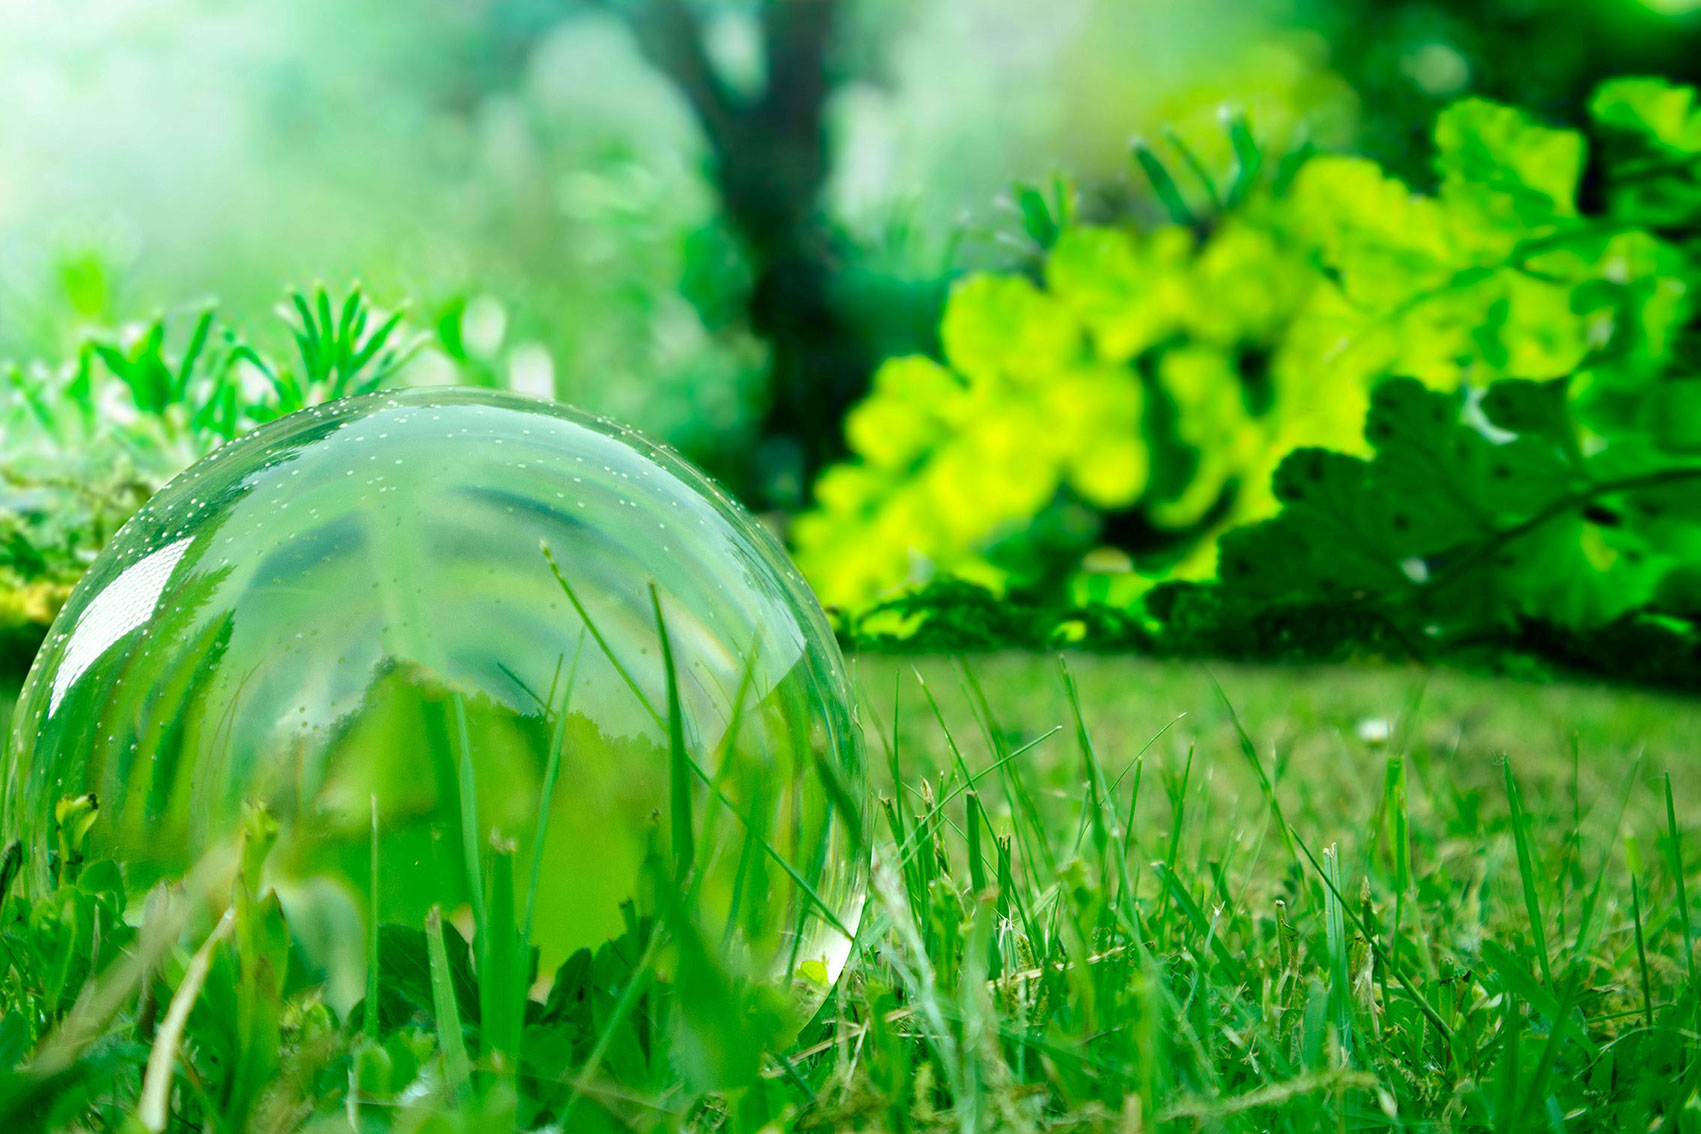 clear acrylic sphere sitting in grass